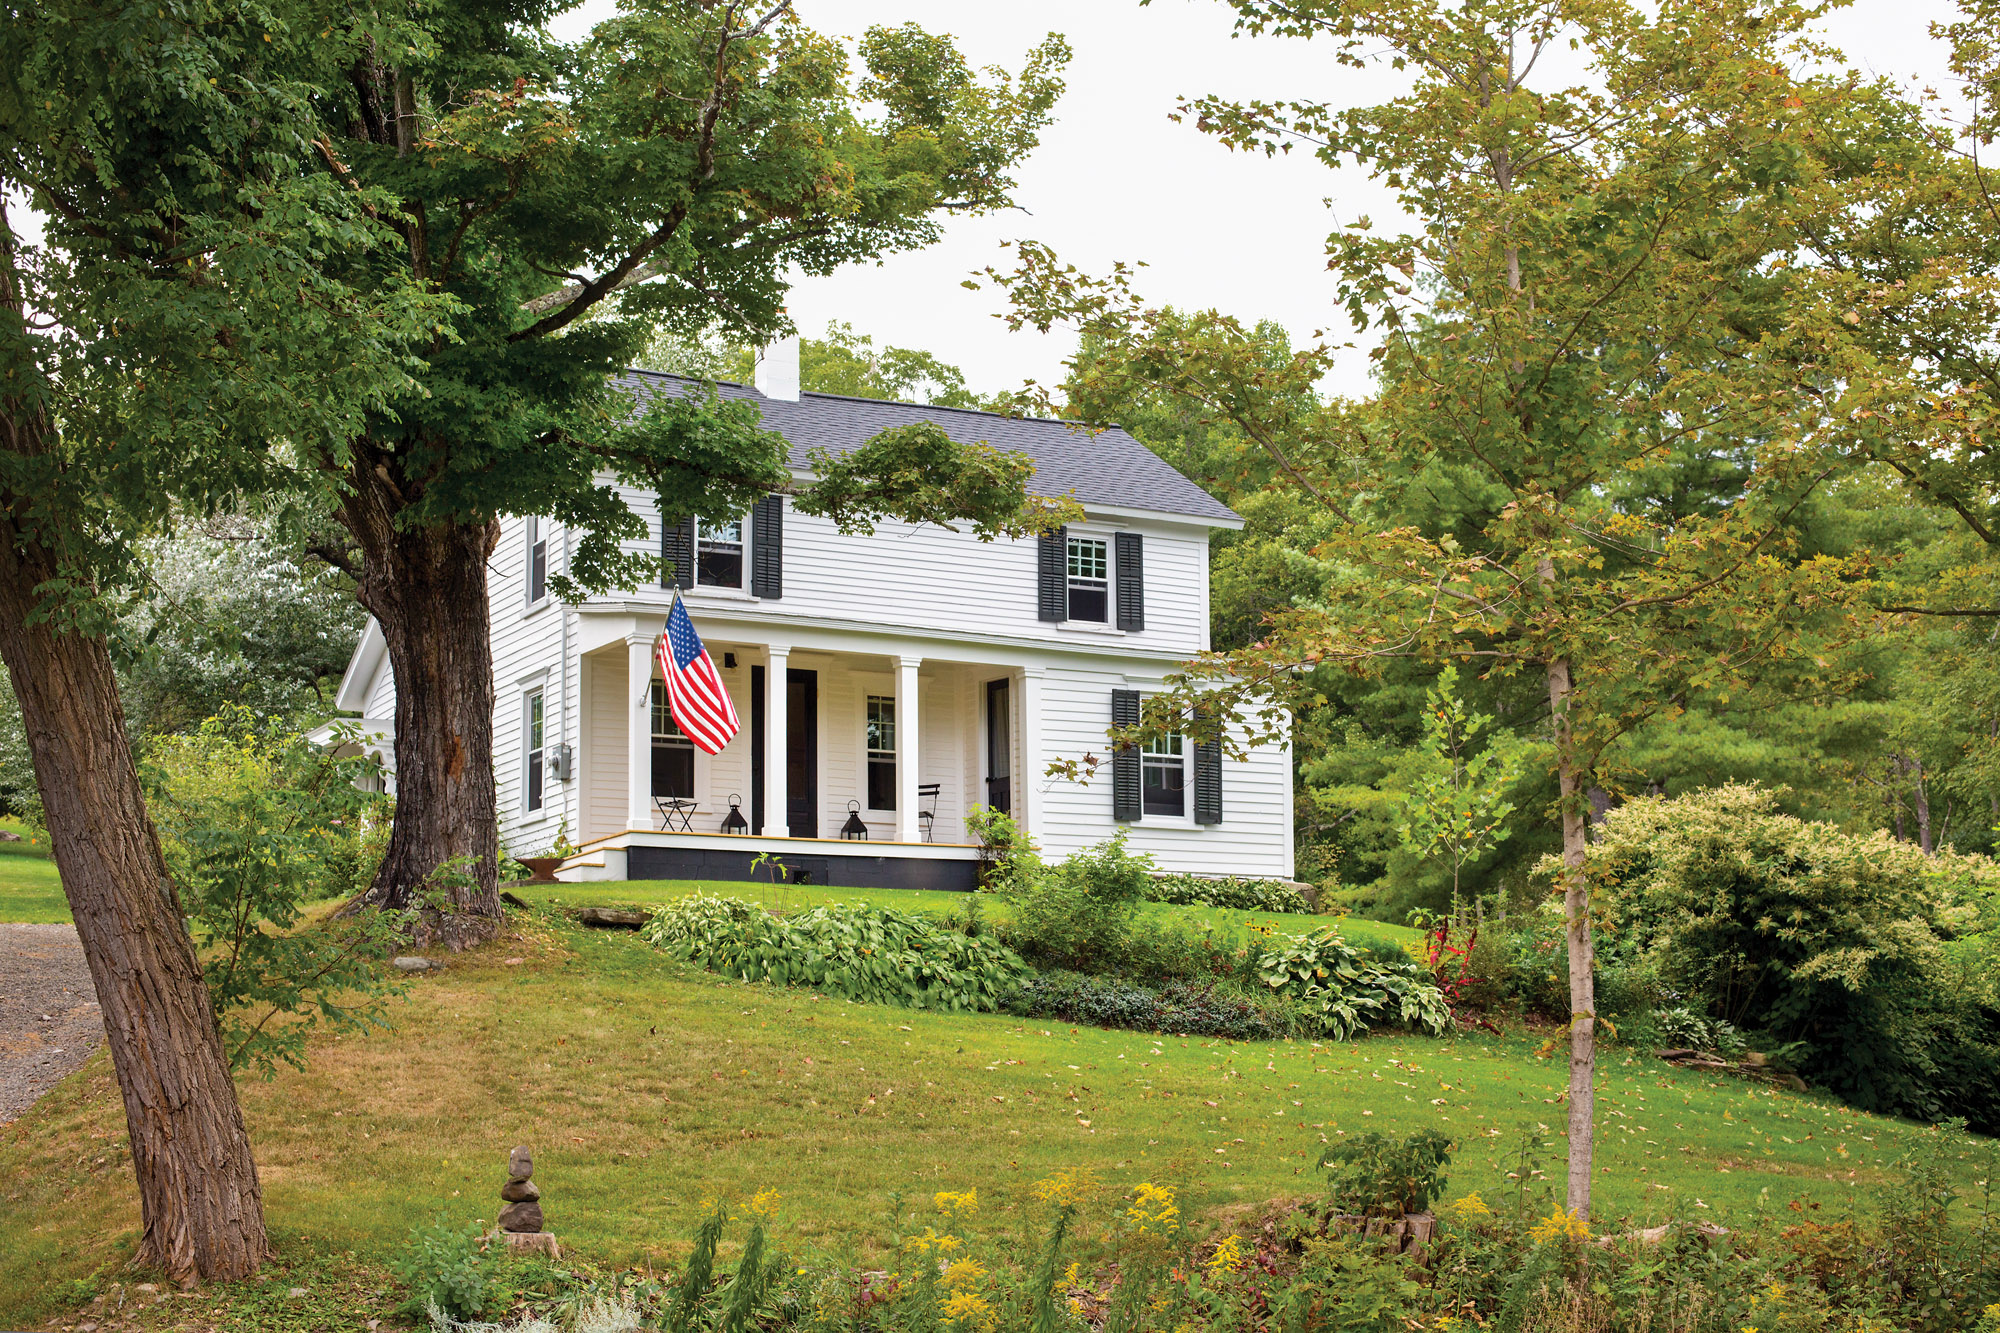 The historic house had been neglected during a period of vacancy. Its Greek Revival porch has been restored, and the gardens revived in an agrarian landscape.